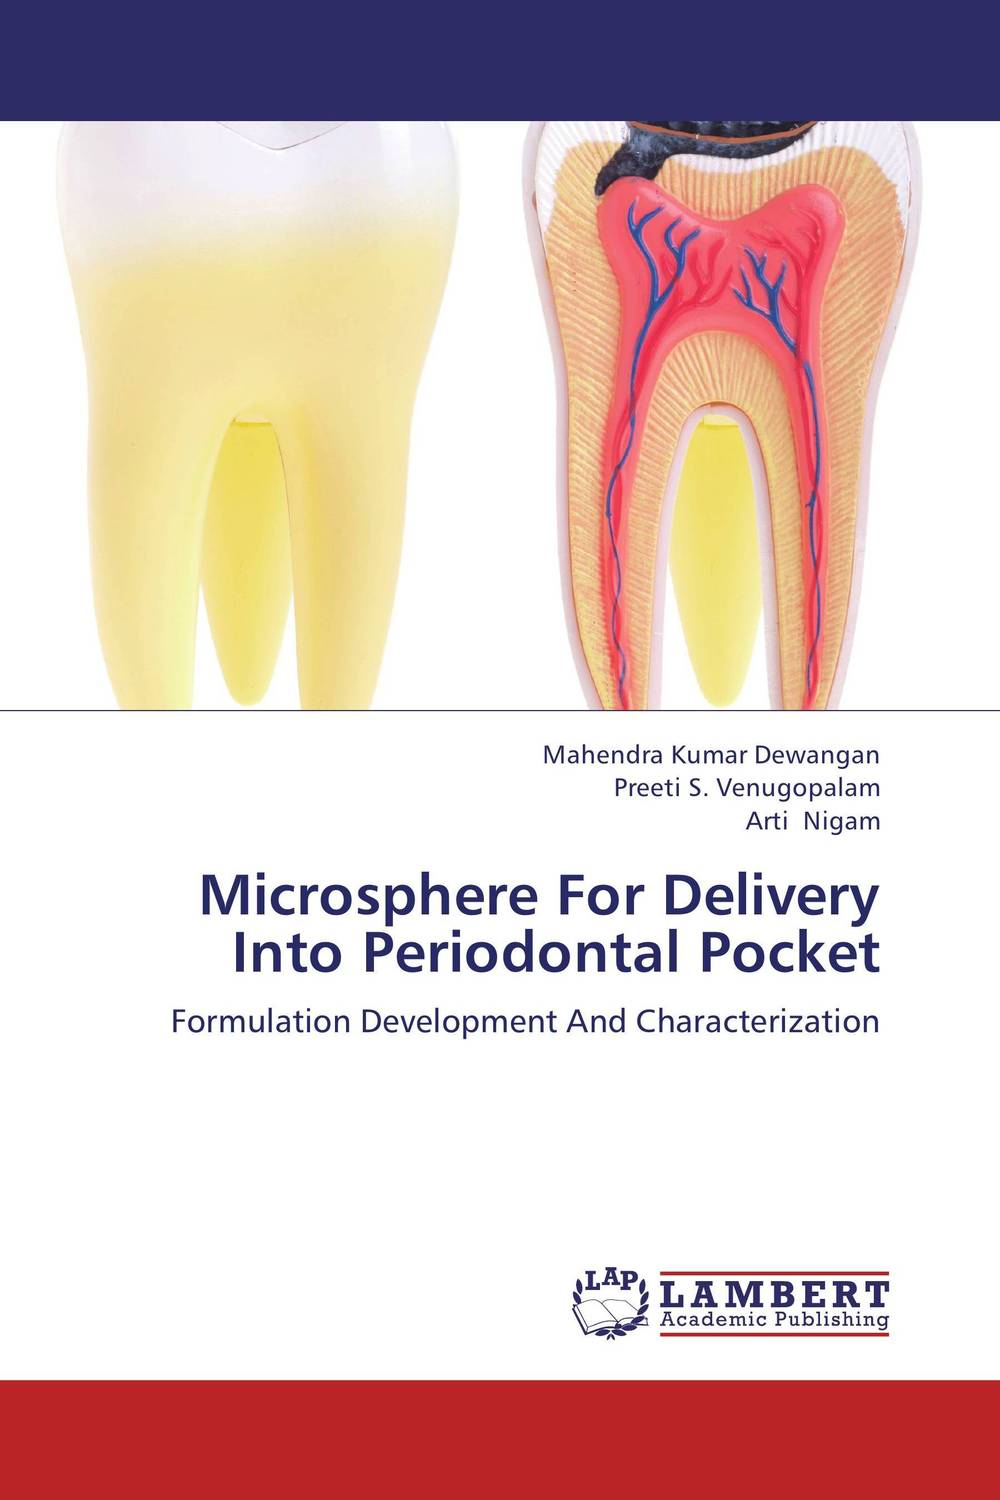 Microsphere For Delivery Into Periodontal Pocket new arrival classification of periodontal diseases teeth model dental patient communication model process of periodontal disease